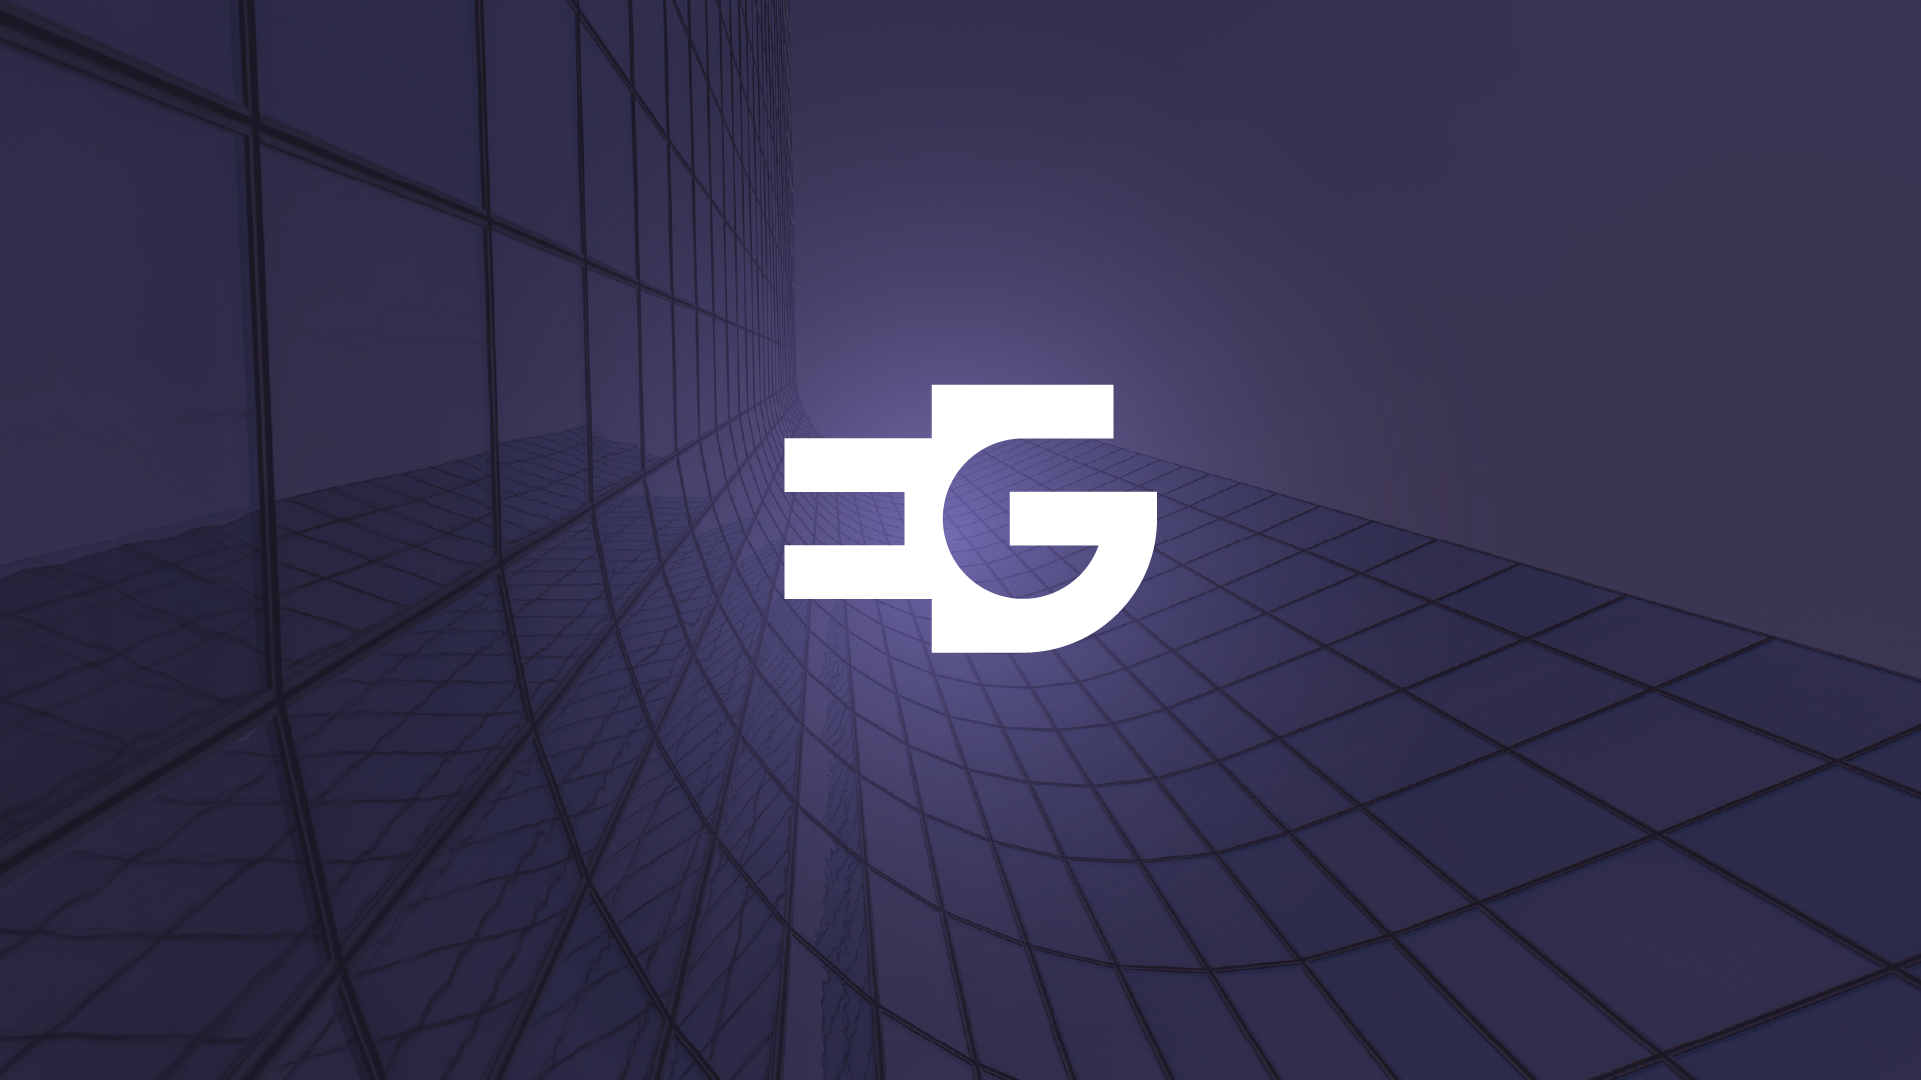 Real Estate Leader EG Launches Refreshed Identity that Unites People and Property